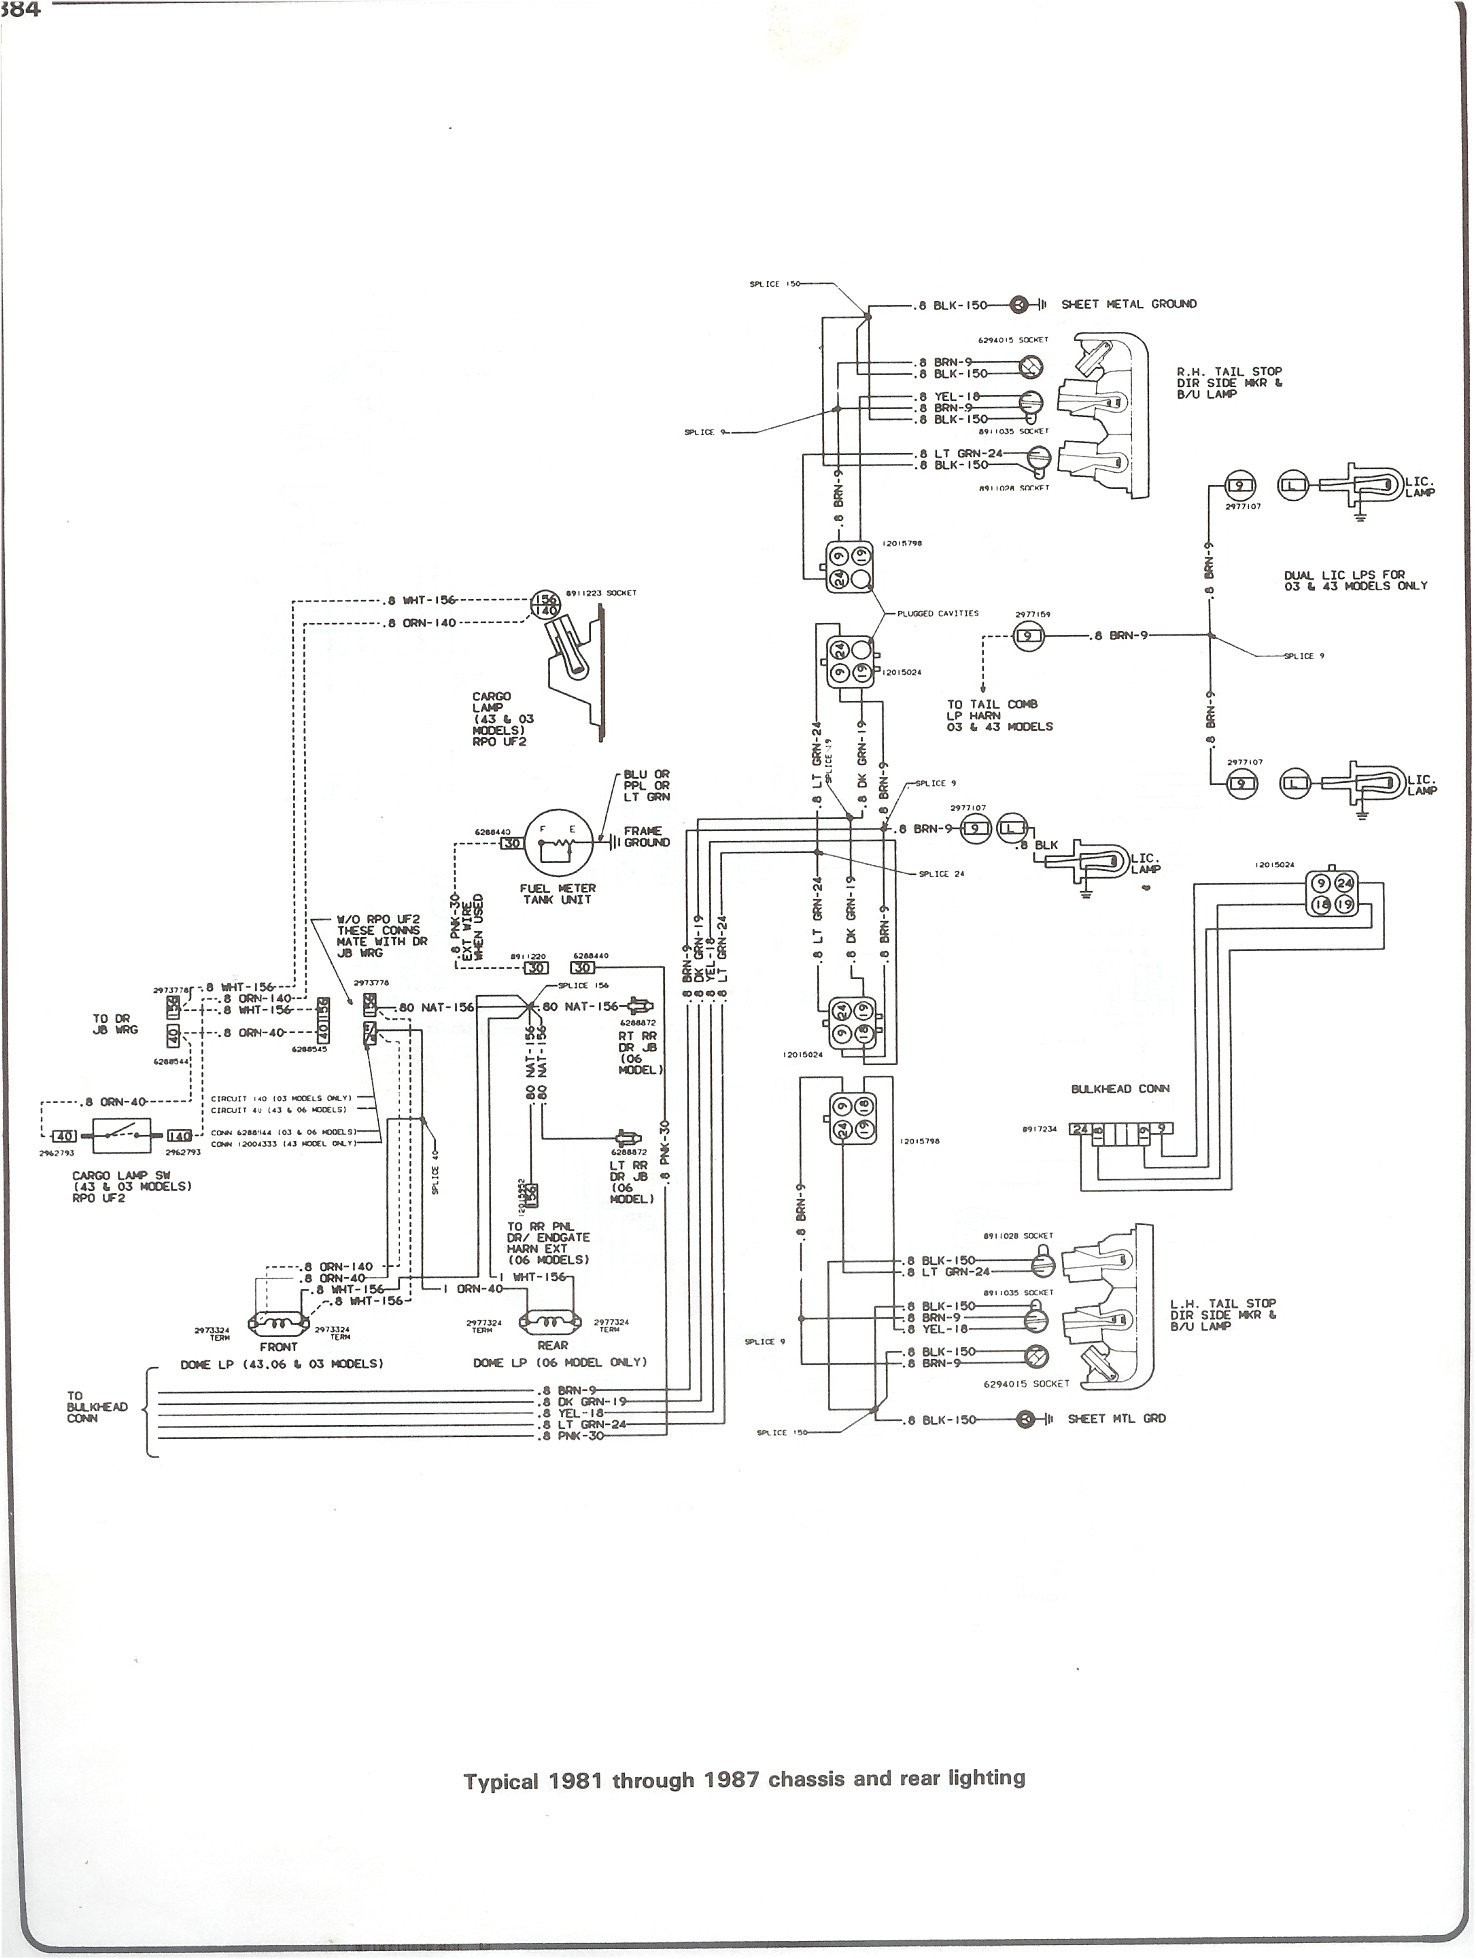 75D0D 1985 Chevy 305 Engine Wiring Diagram | Wiring Library  Wiring Library